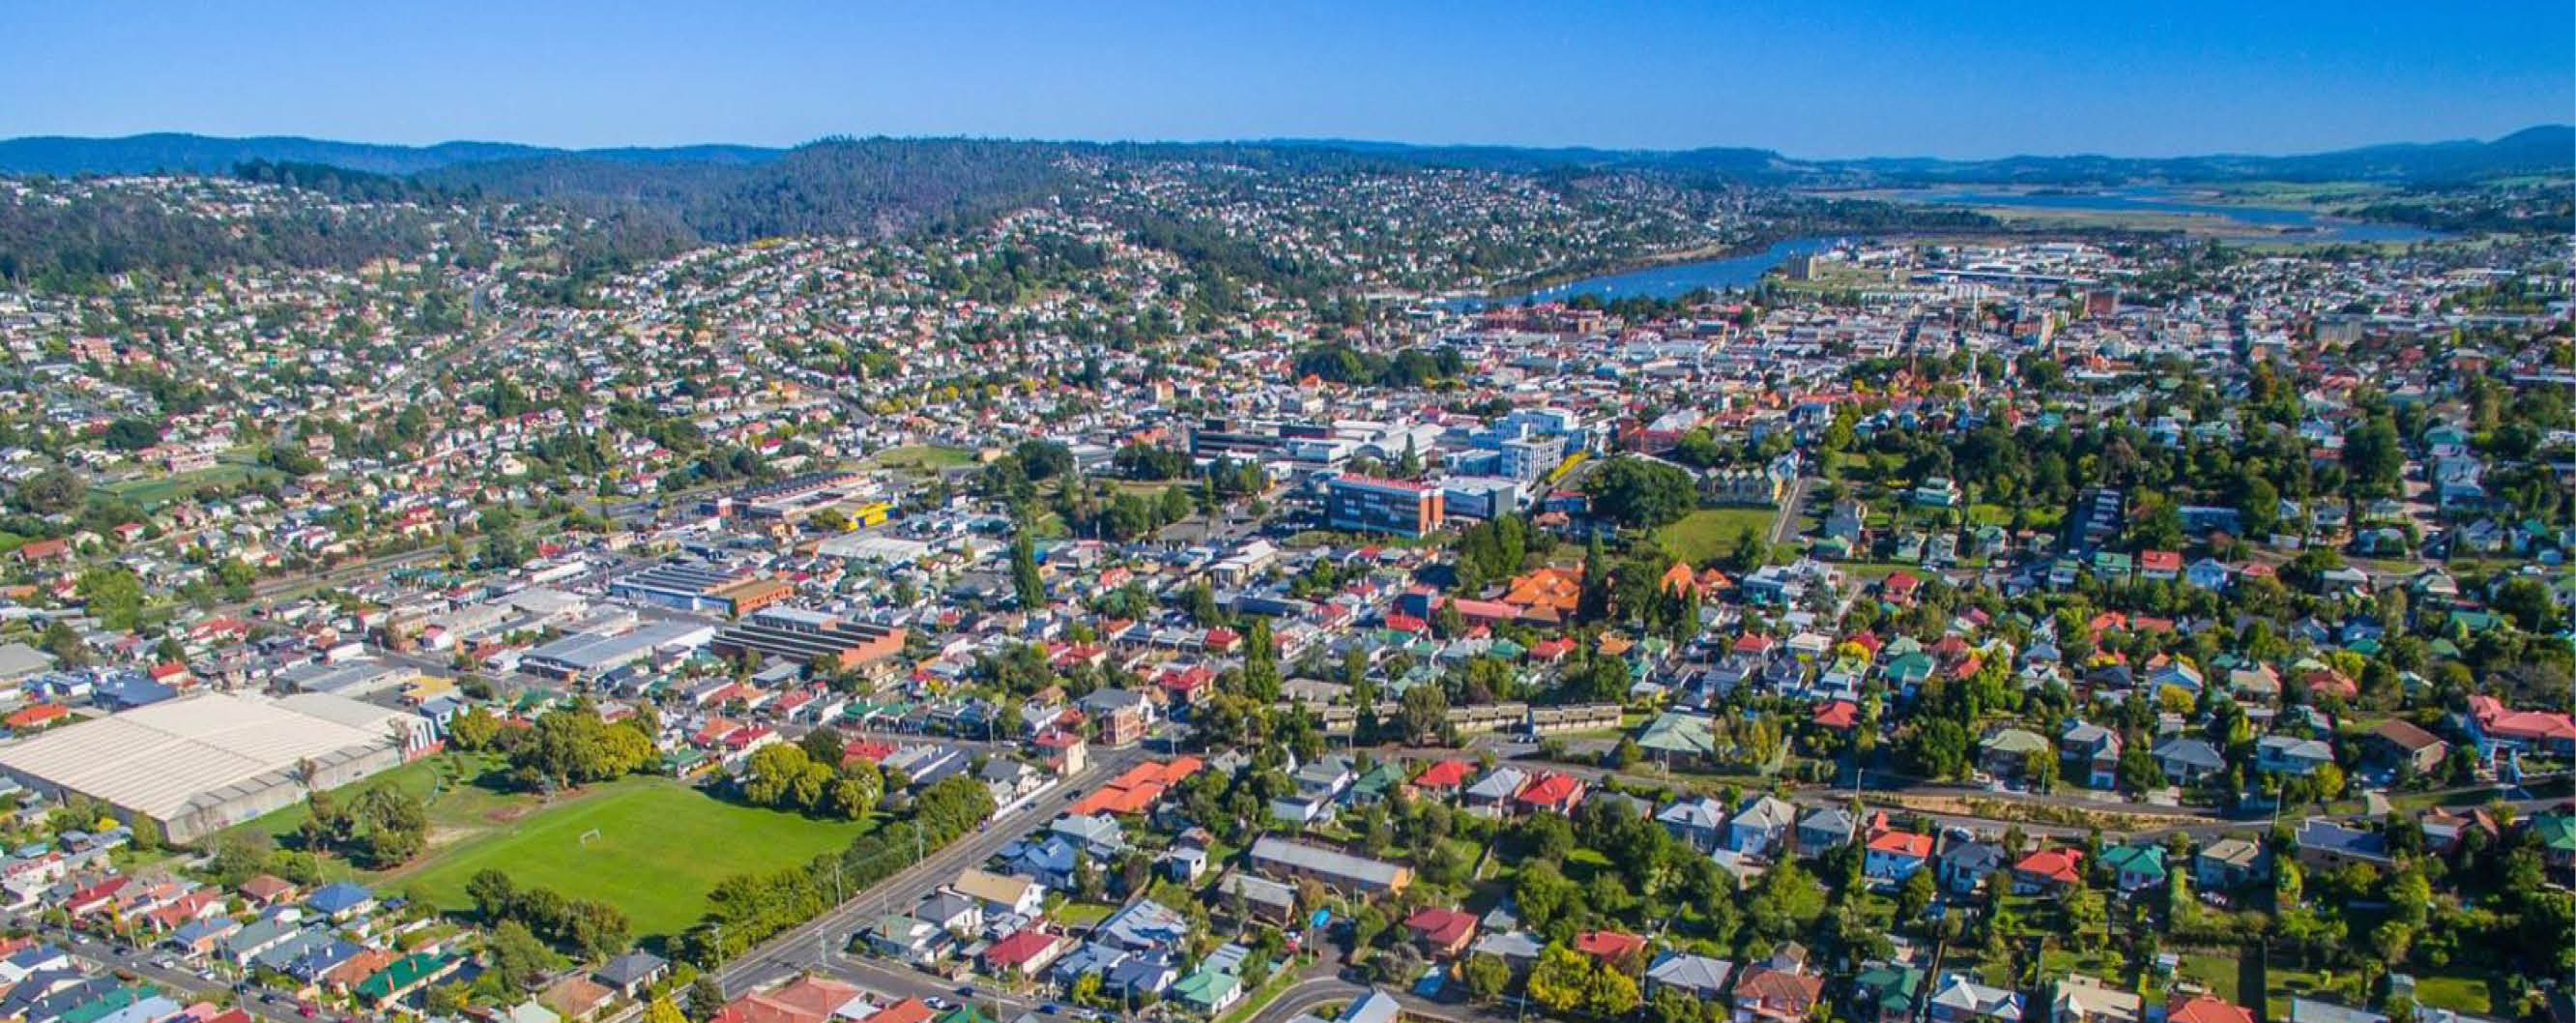 City of Launceston City View